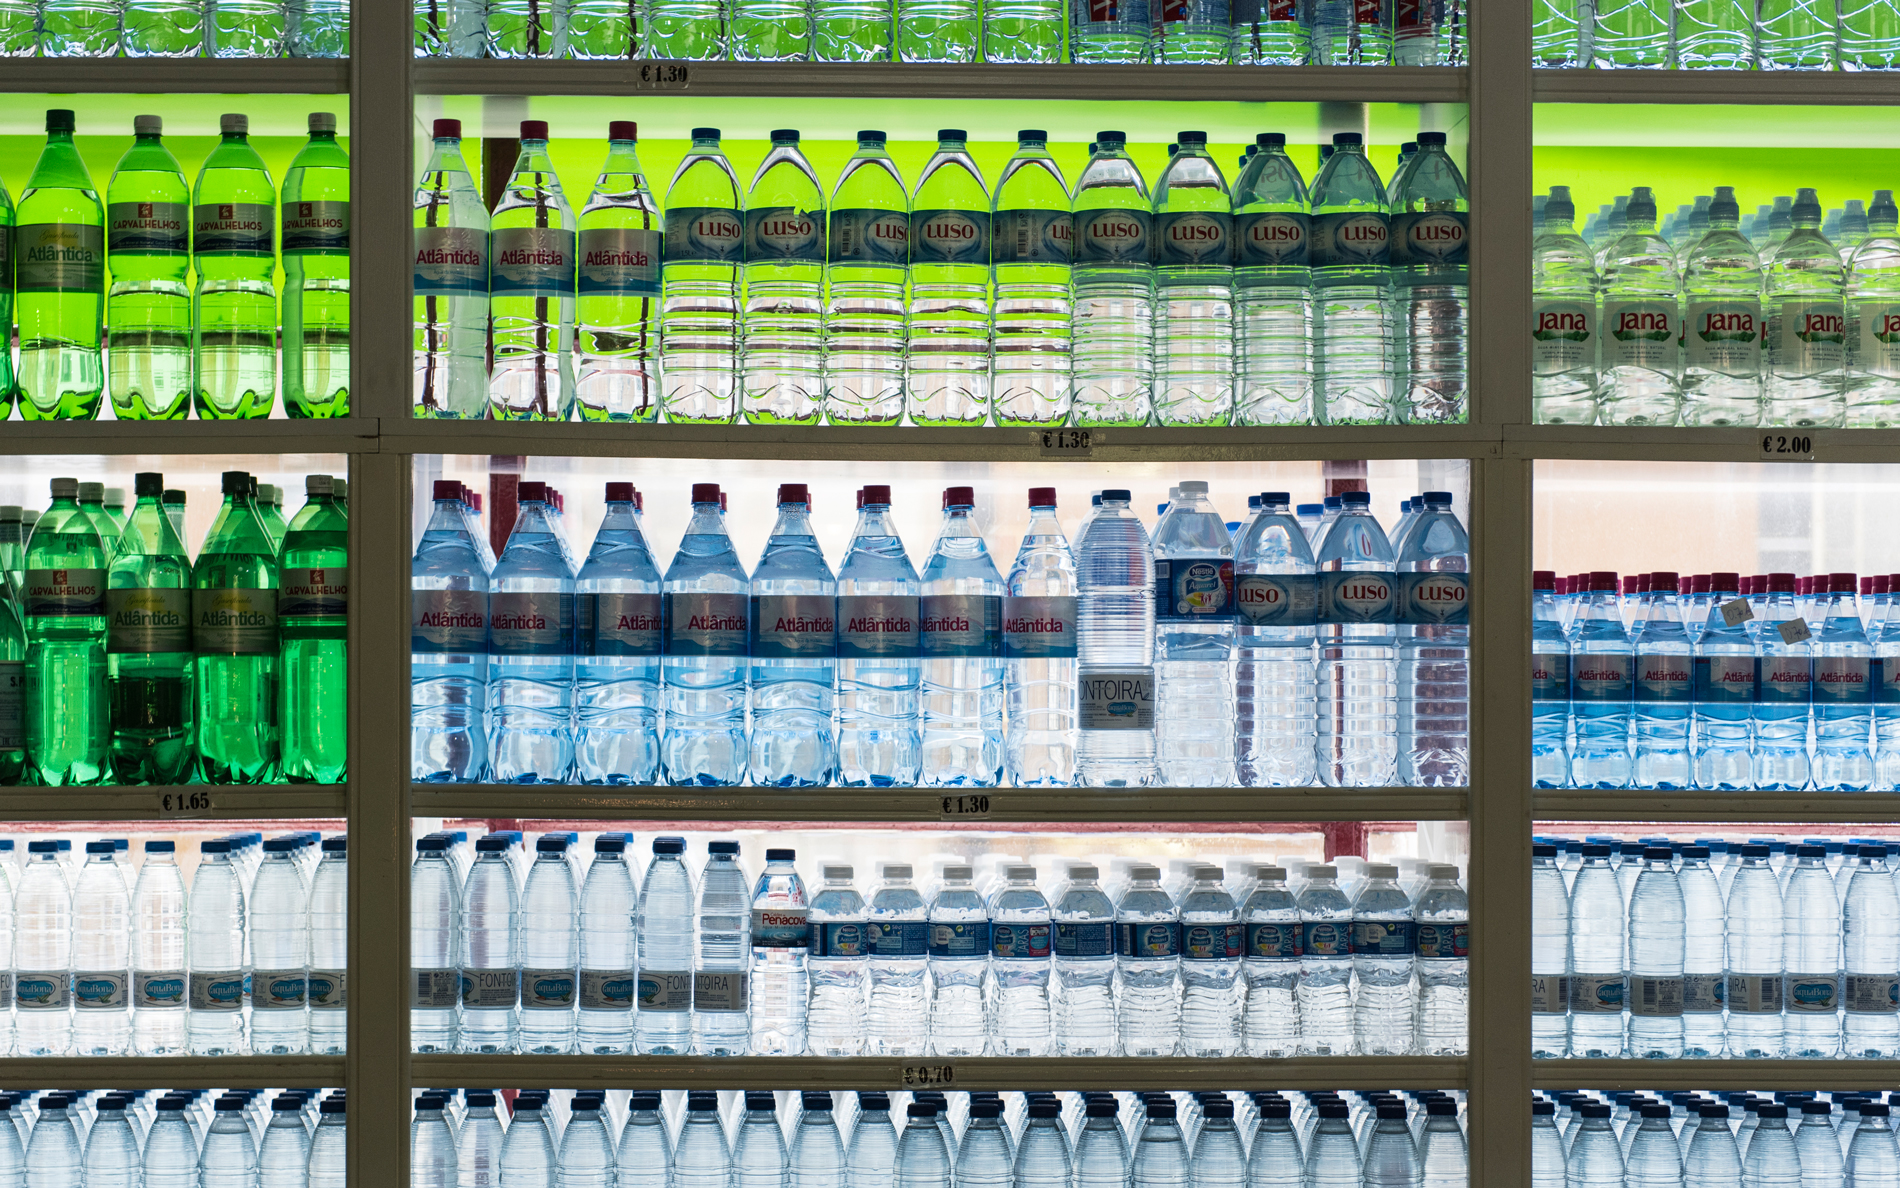 Americans Now Drink More Bottled Water Than Soda